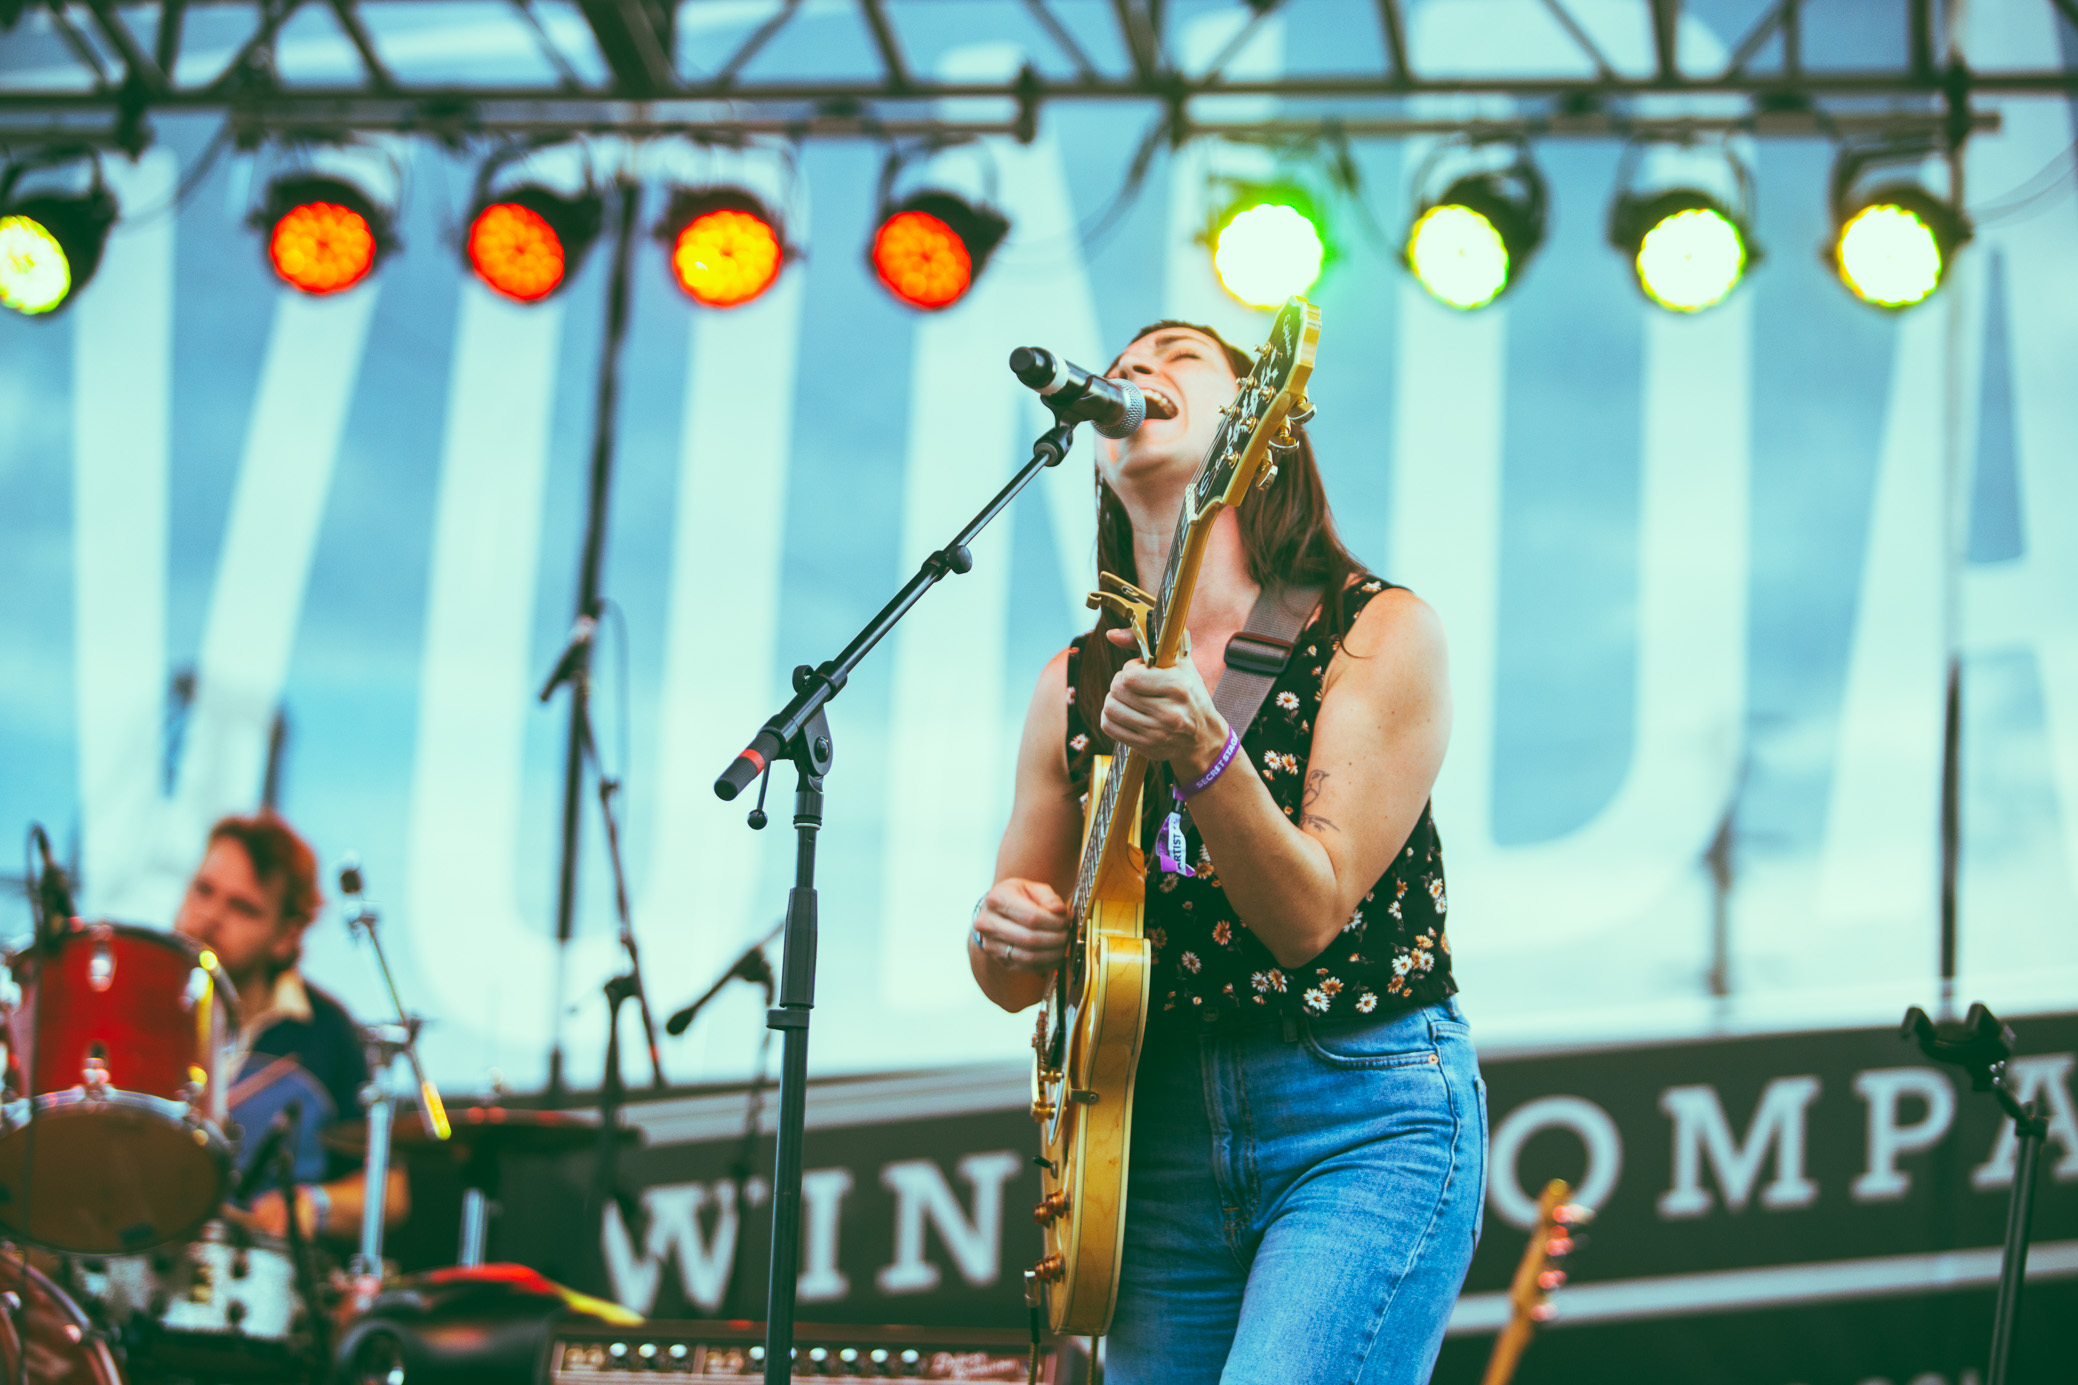 Julie Odell performs in concert at the Secret Stages Music Discovery Festival in Birmingham, Alabama on August 4th, 2018. (Photo by David A. Smith/DSmithScenes)